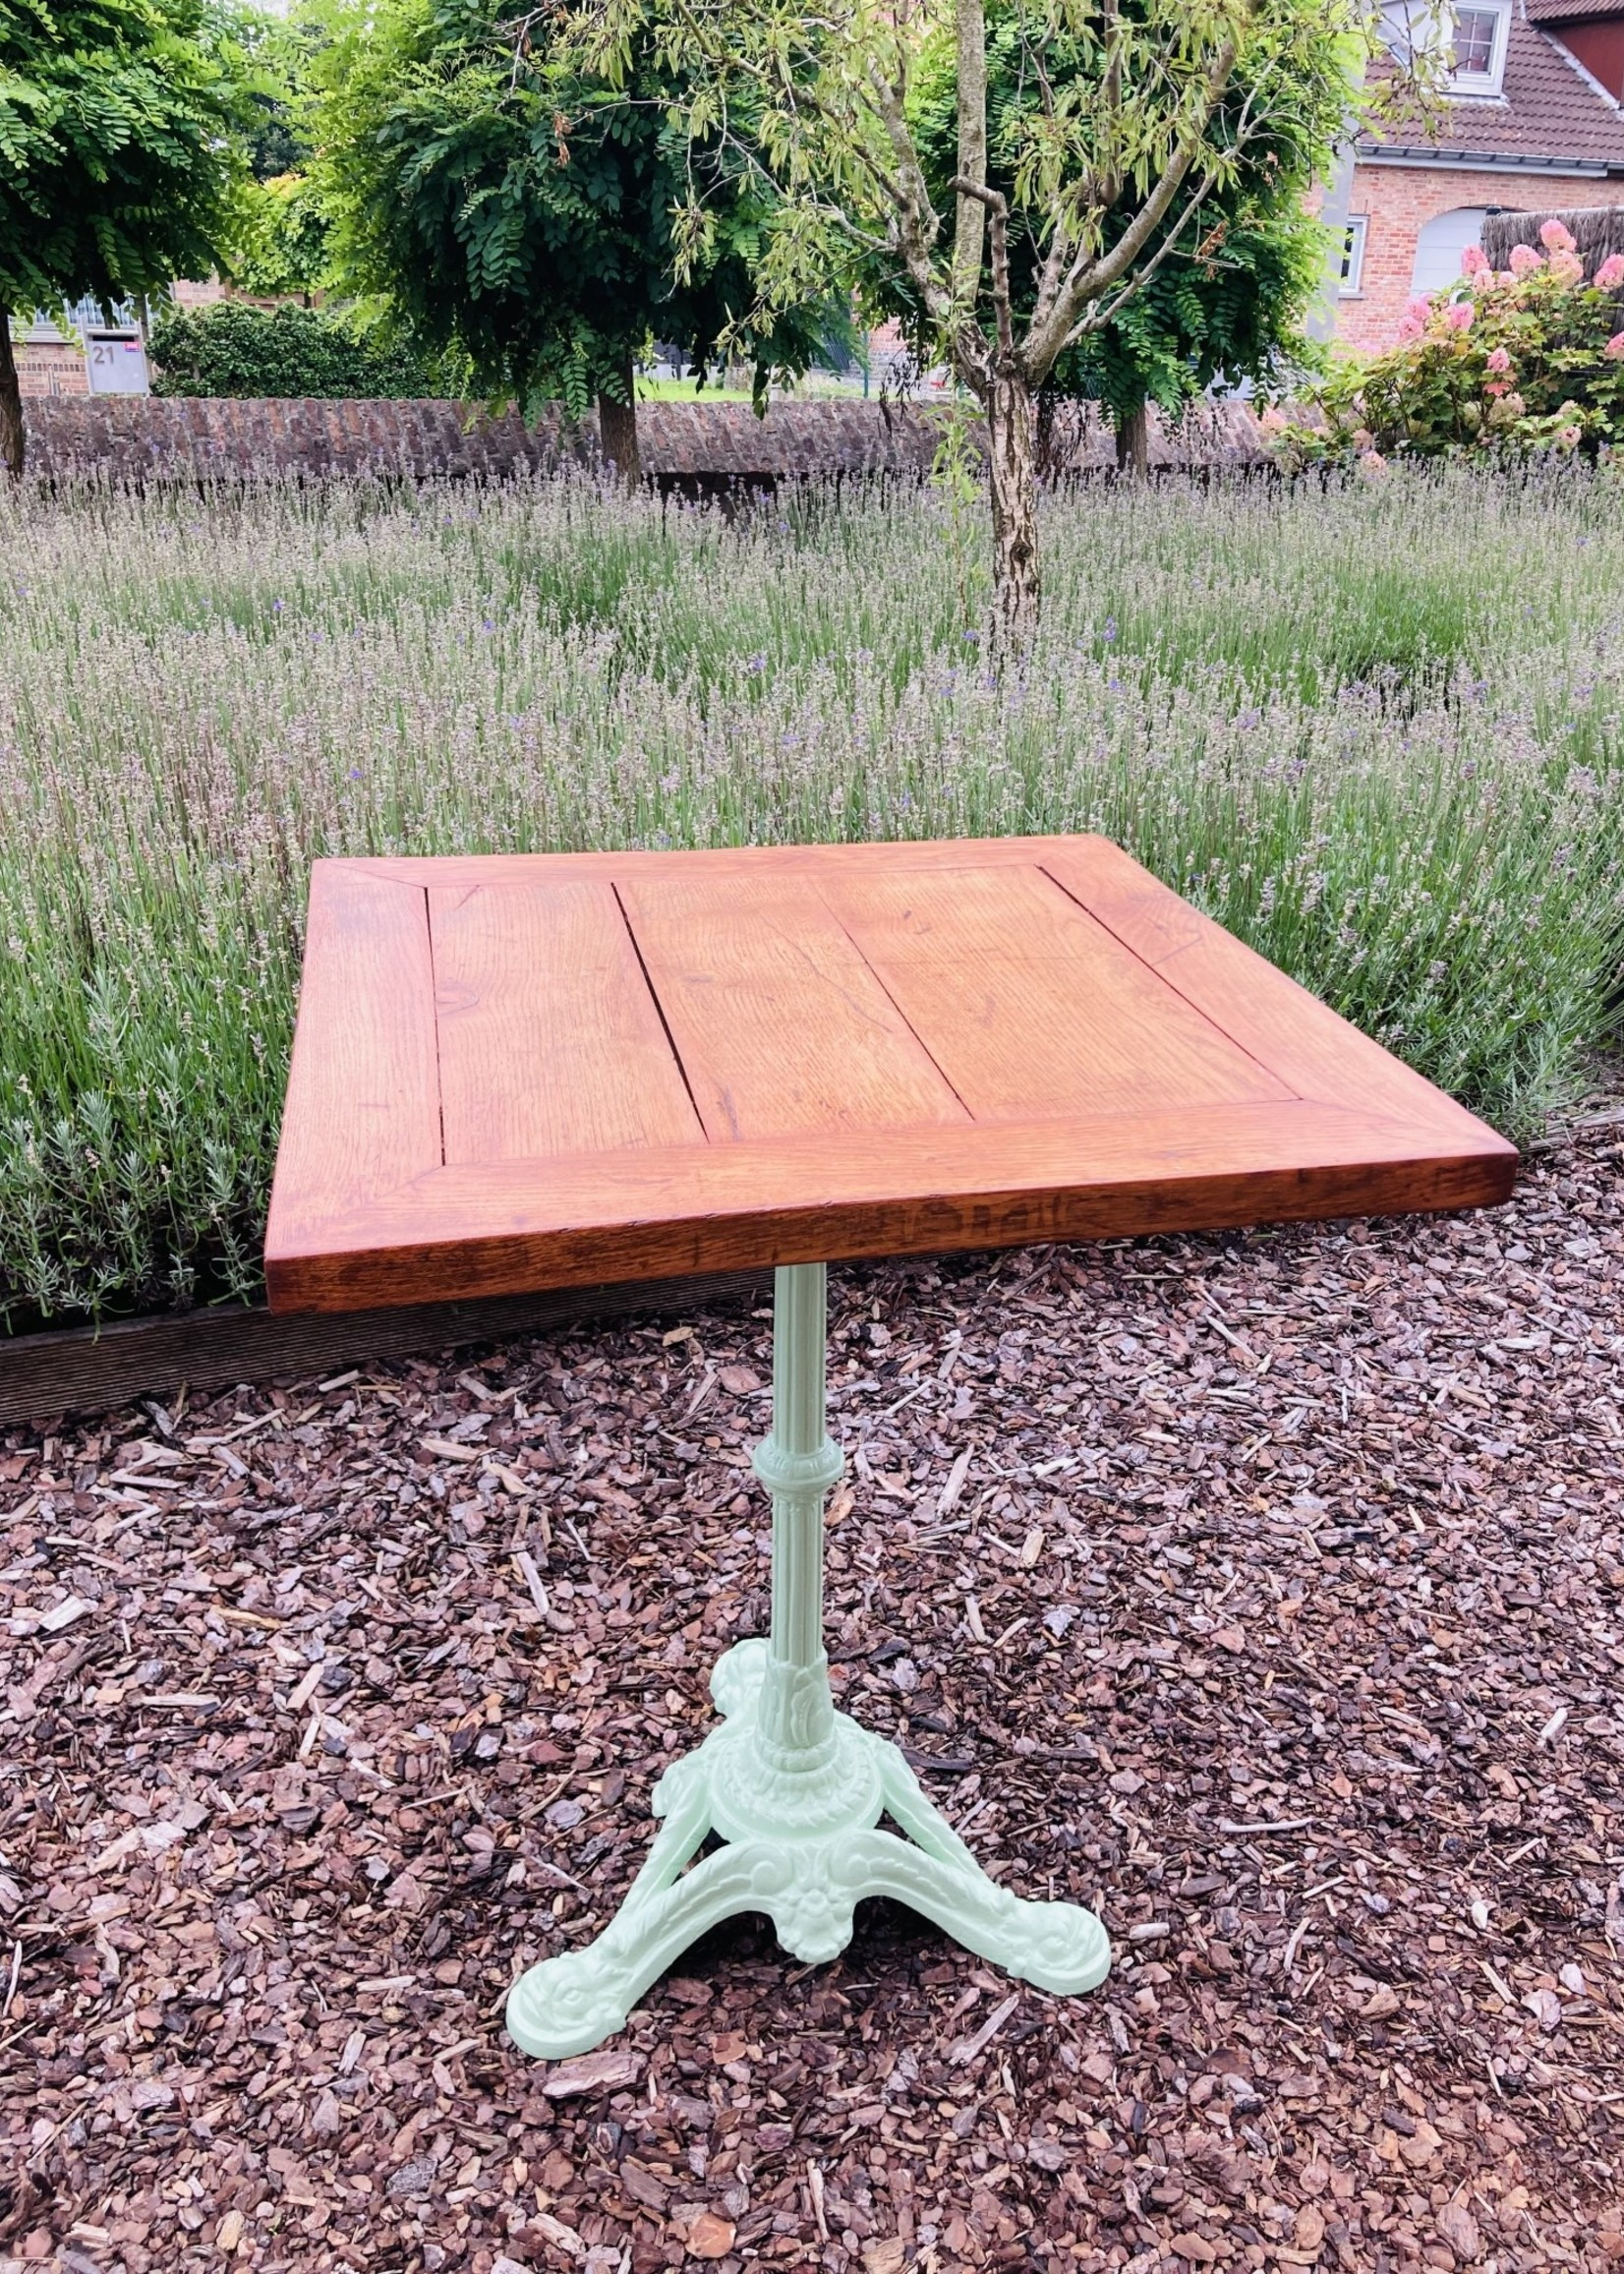 Antique square table with wooden table top and green painted cast iron base